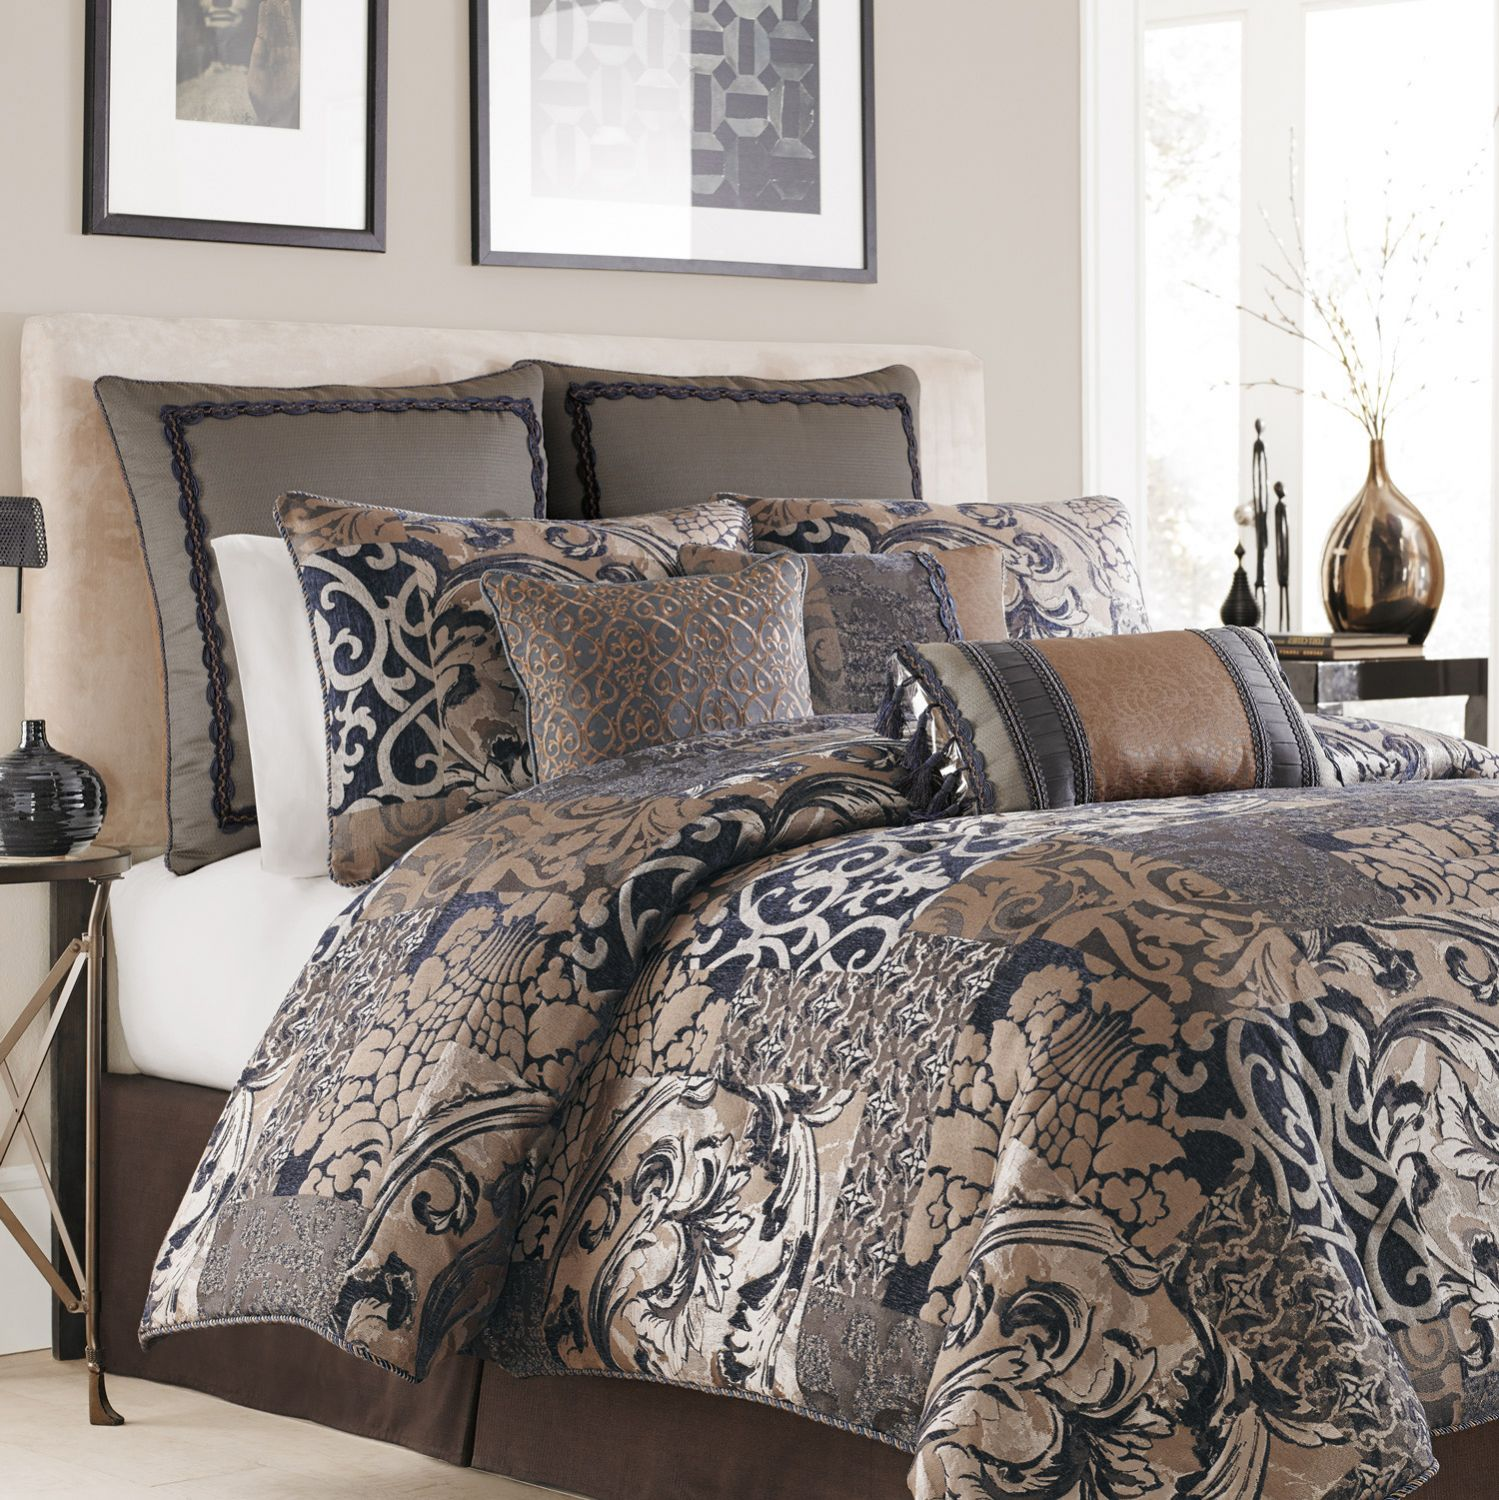 Queen Bed Set Bedroom Gorgeous Queen Bedding Sets For Bedroom